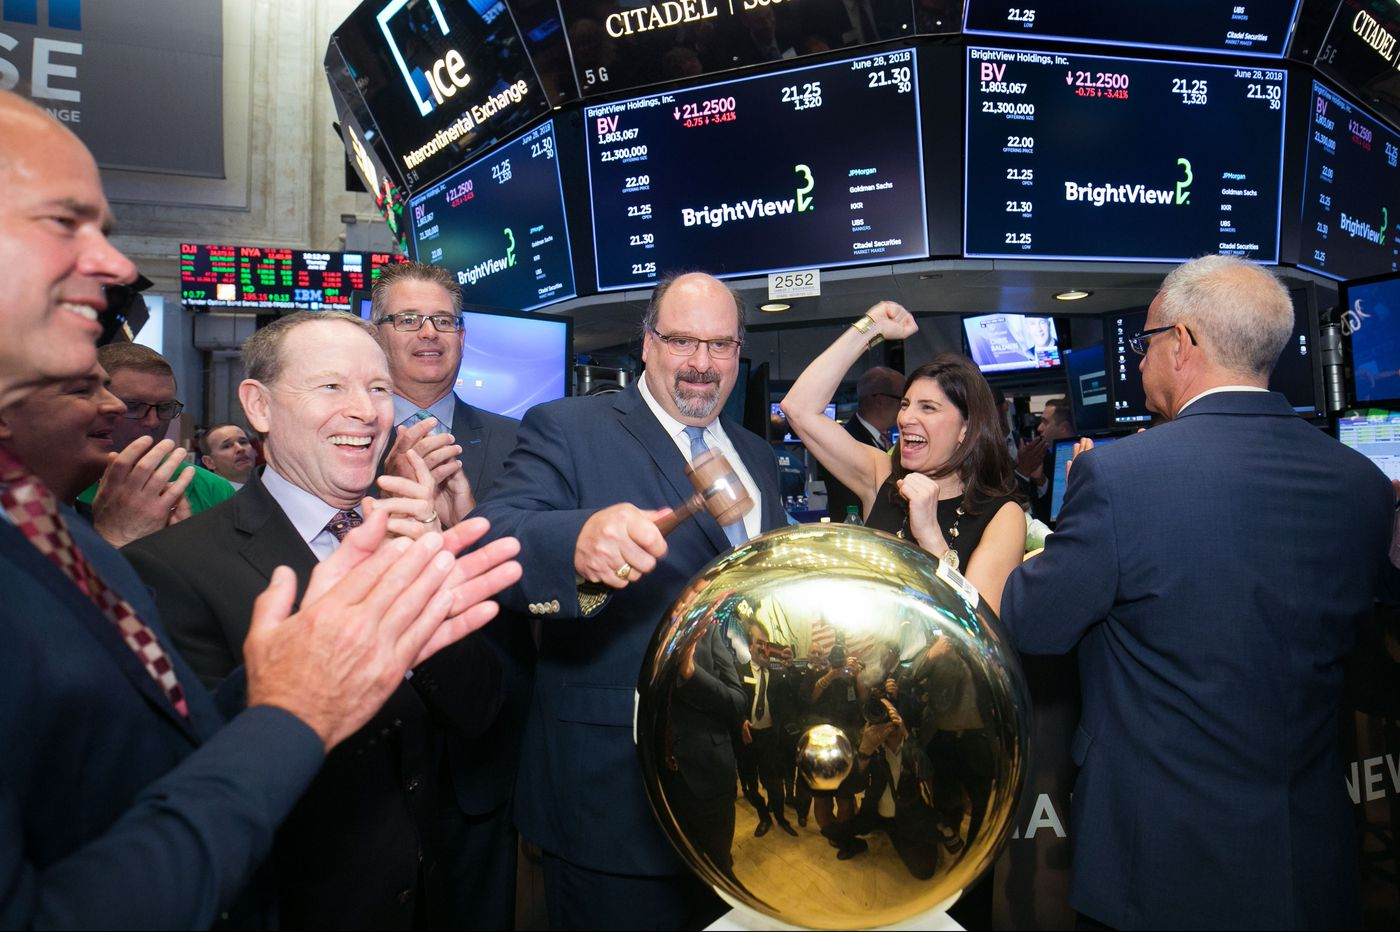 Plymouth Meeting-based BrightView commercial landscaper debuts shares on the New York Stock Exchange